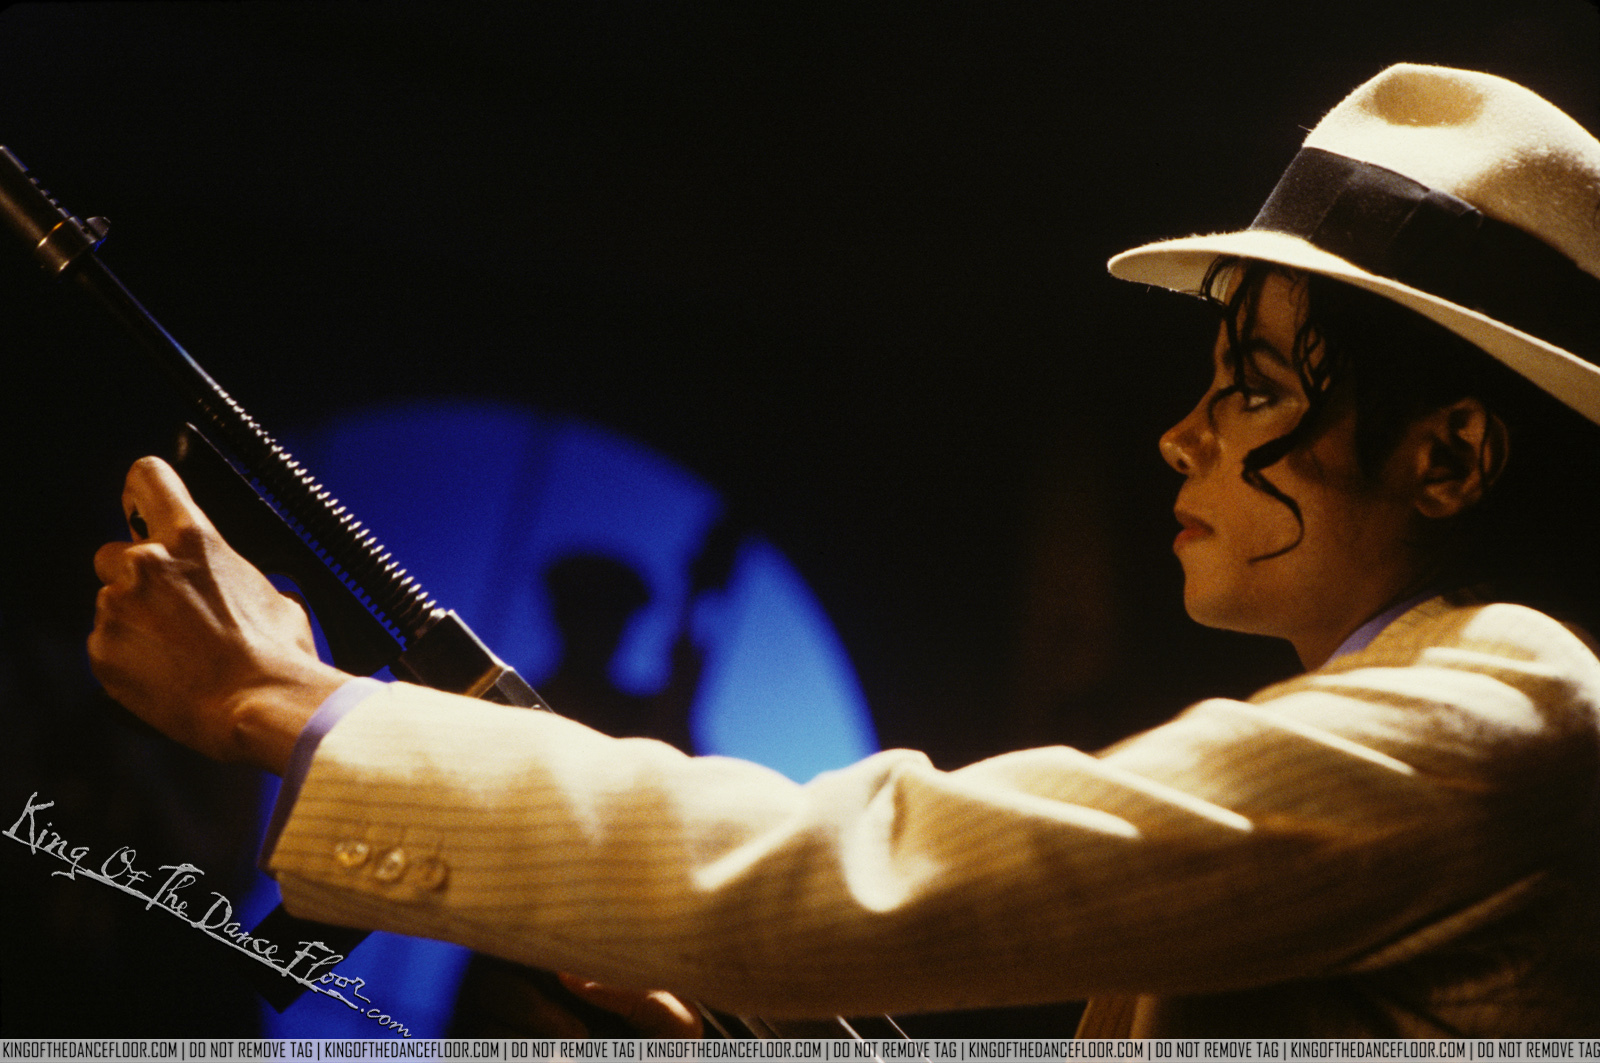 The official ultimate michael jacksonology blog club 30 39 s the story of a smooth criminal - Michael jackson smooth criminal pictures ...